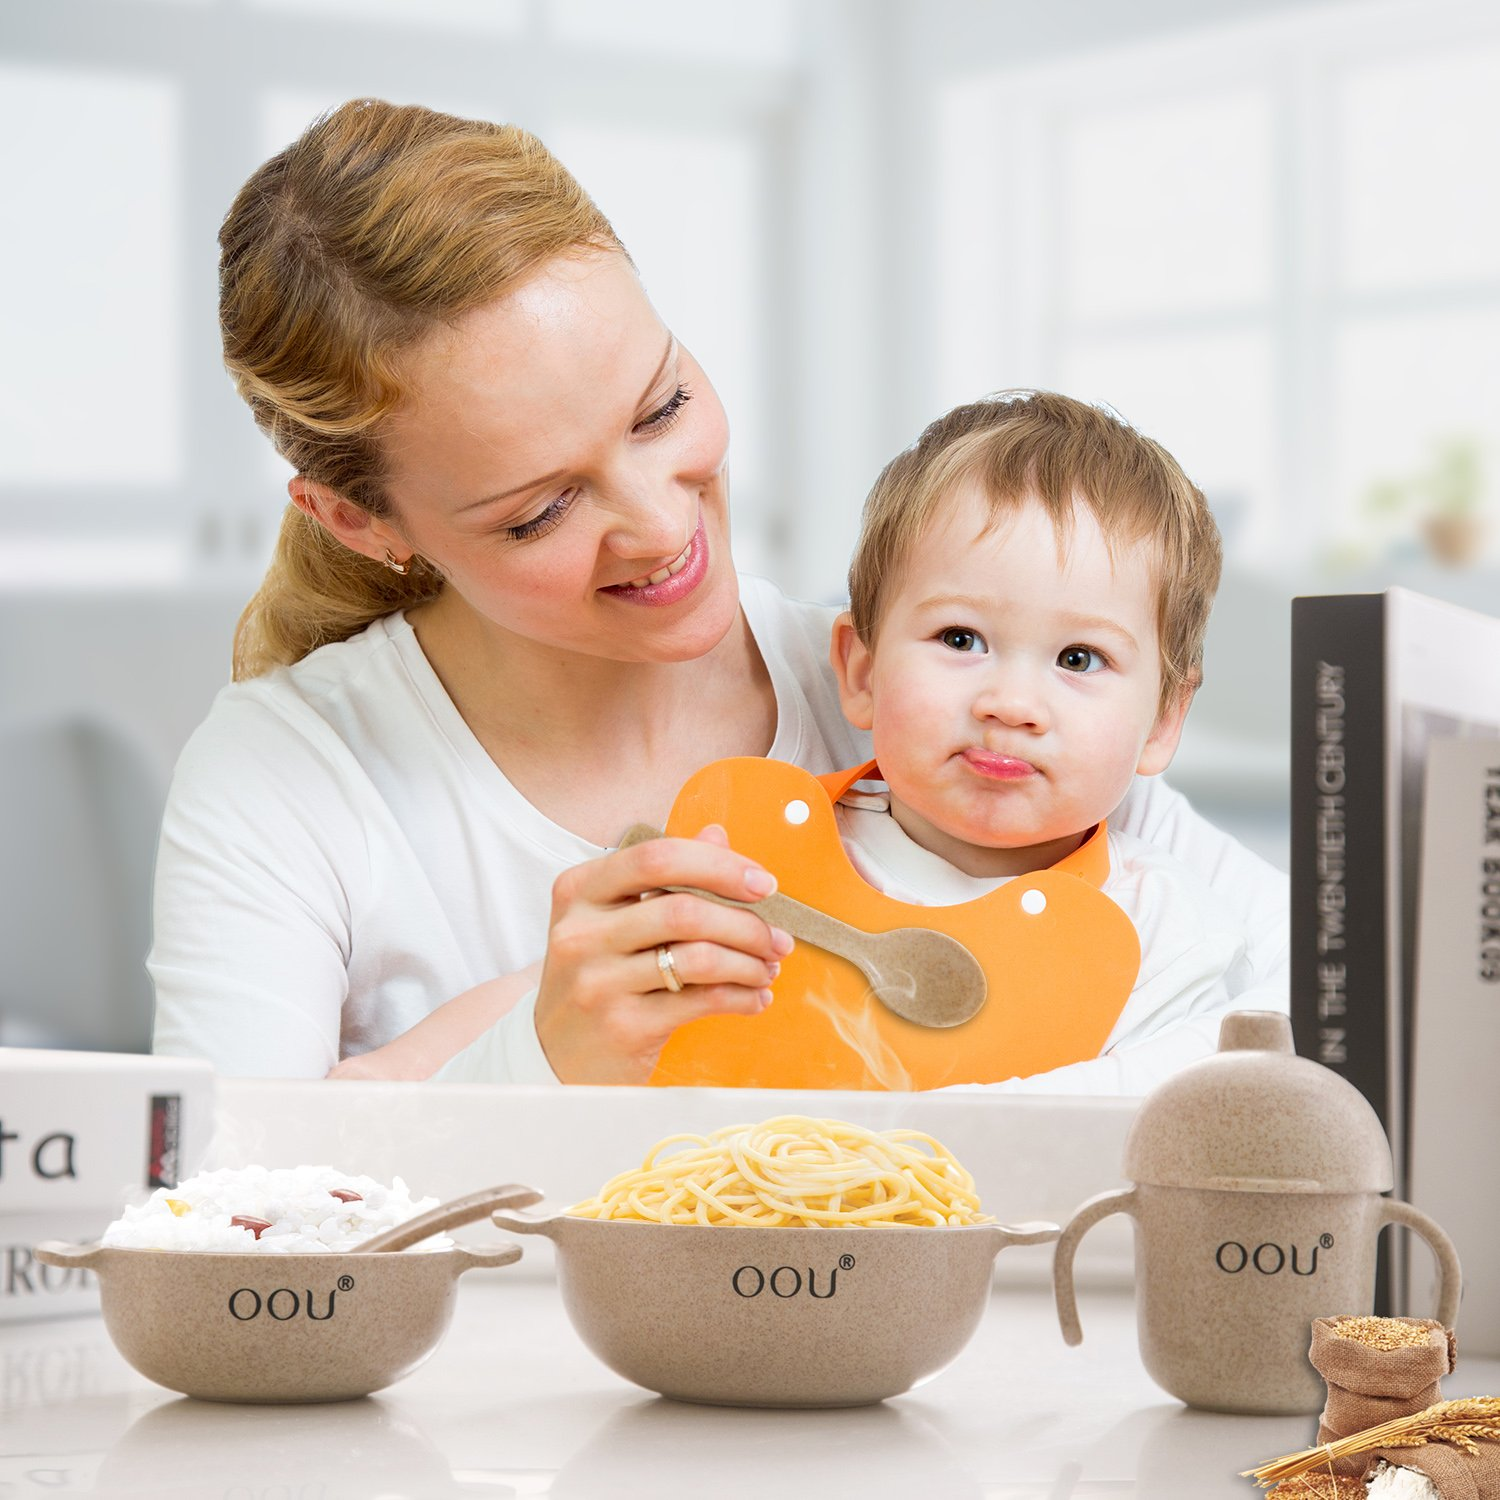 Baby Feeding Bowls - Wheat Fiber Ultimate Baby Feeding Set Baby Bowls Fork Spoon and Cup Perfect To Go Storage FDA Approved BPA Free CPC Certified by OOU (Image #8)